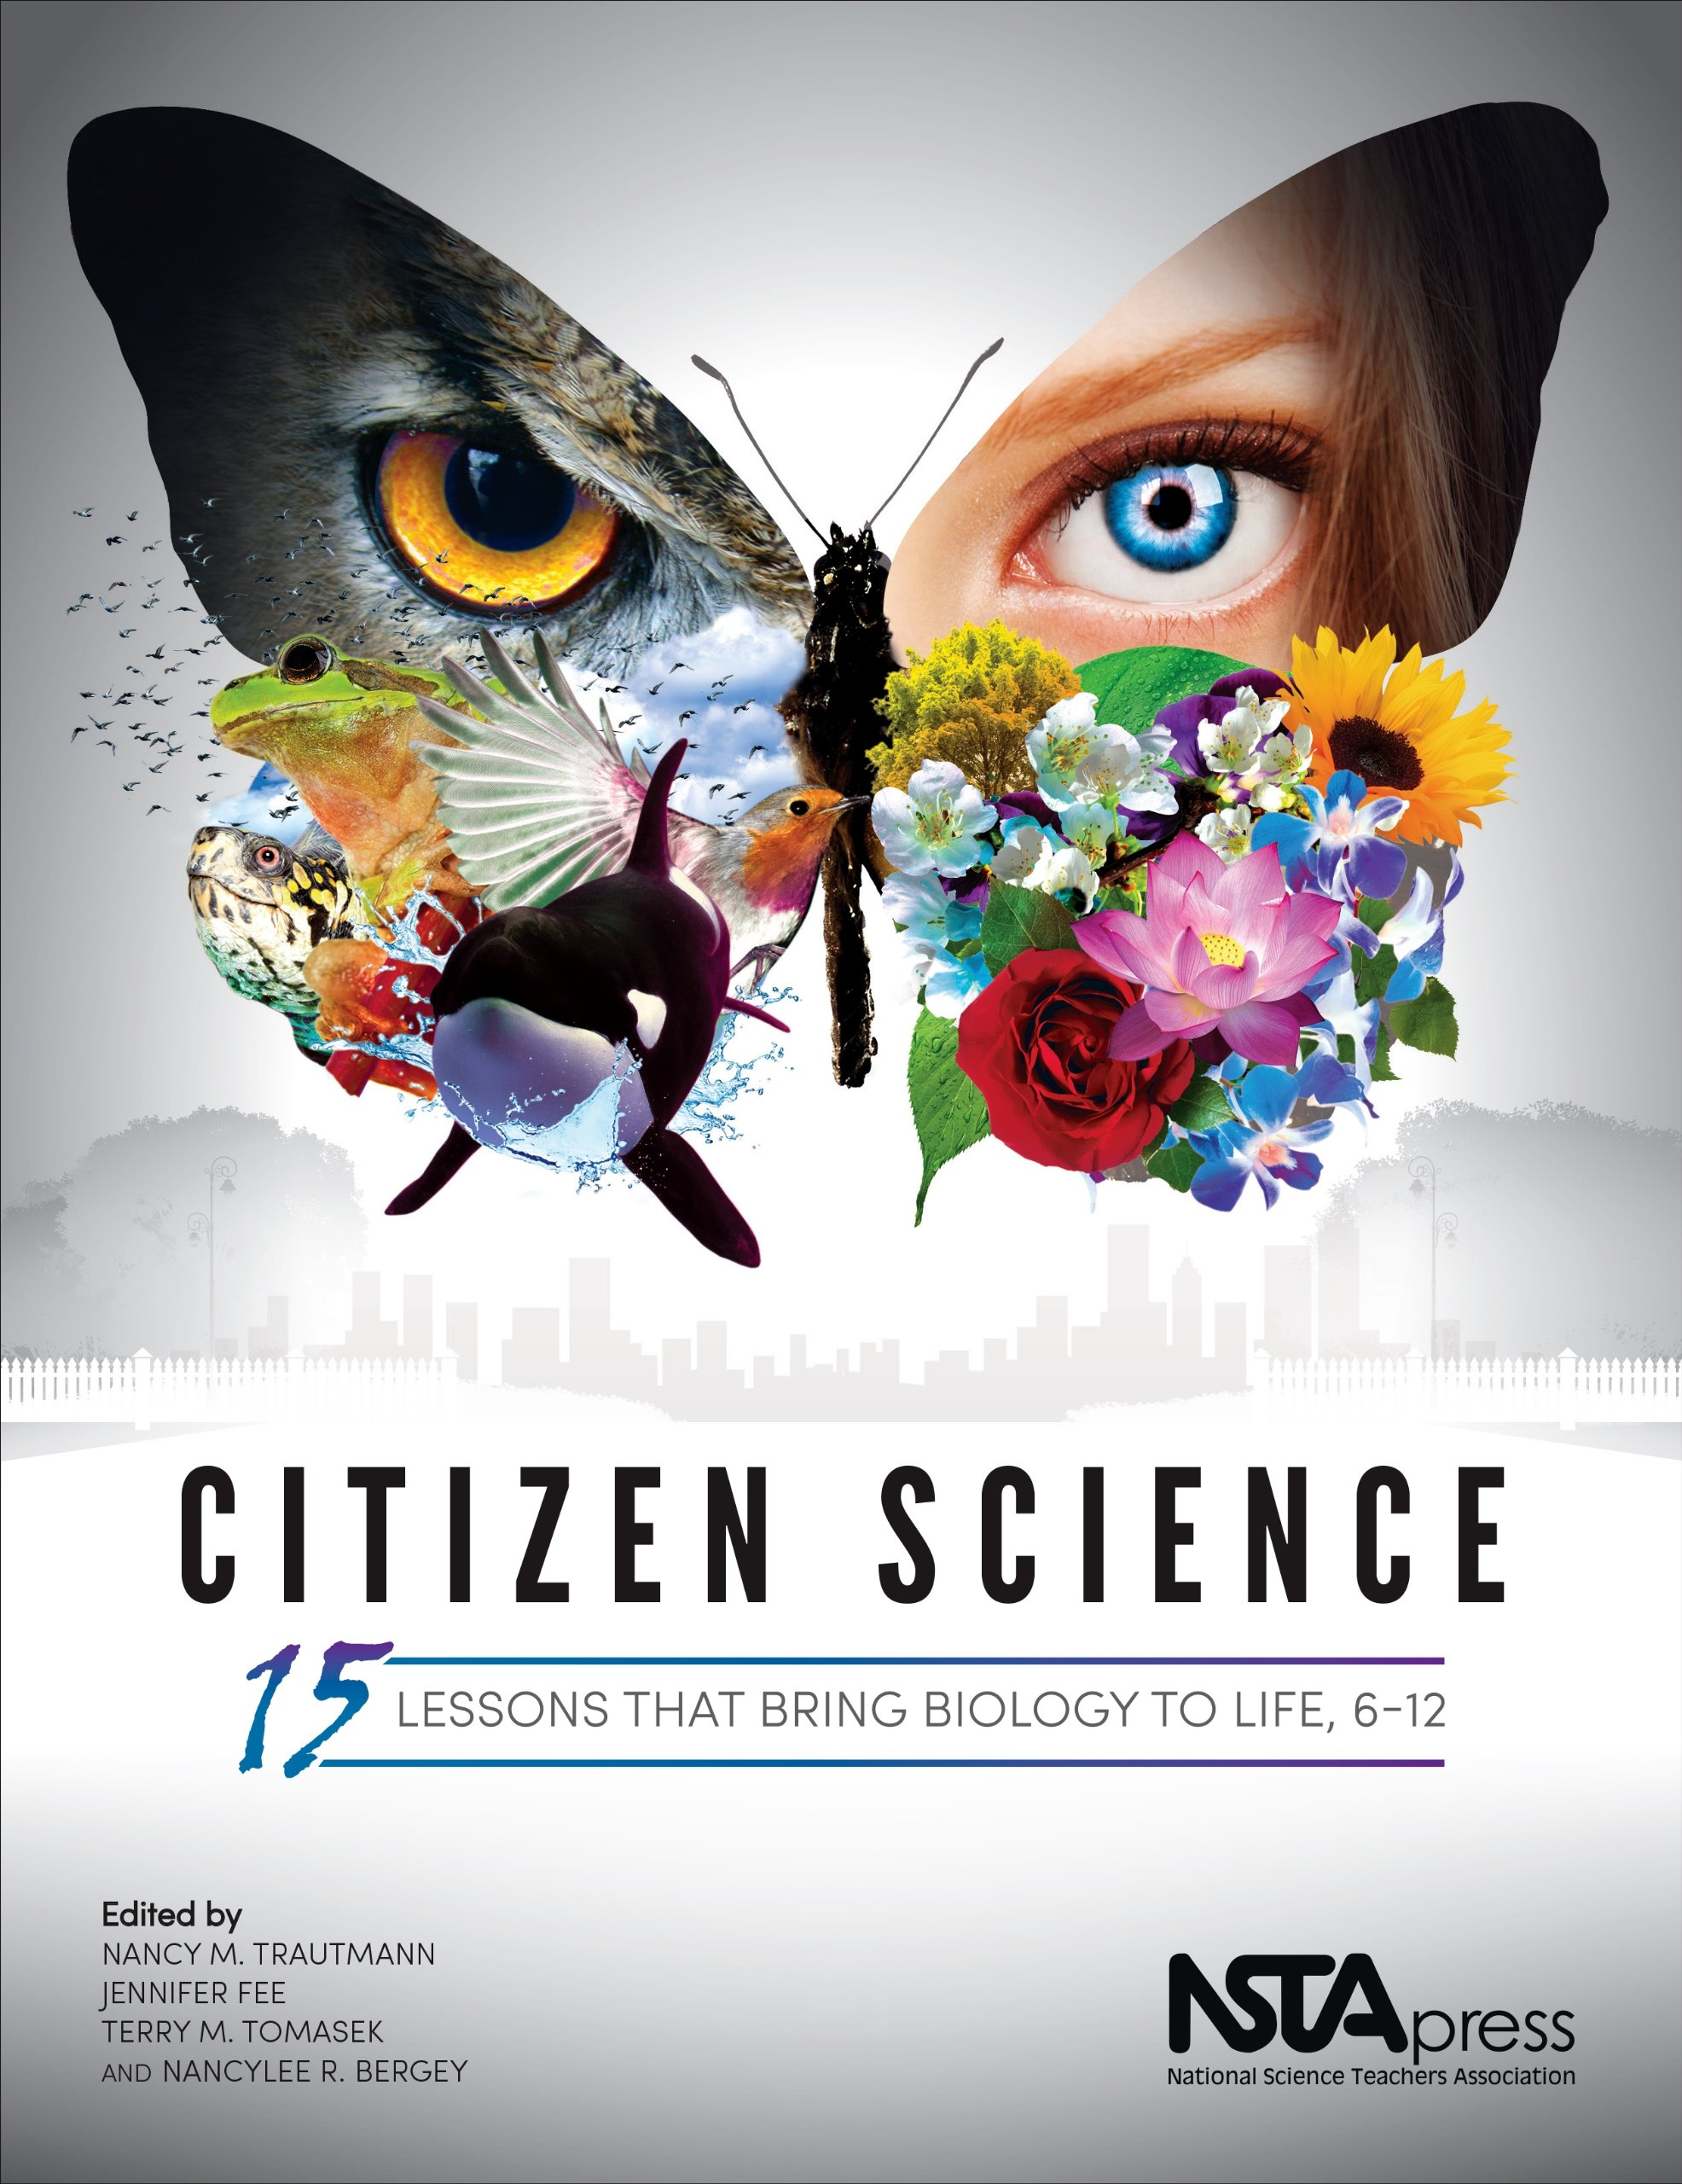 Citizen science 15 lessons that bring biology to life 6 12 citizen science 15 lessons that bring biology to life 6 12 pb344x nancy m trautmann jennifer fee terry m tomasek nancylee r bergey fandeluxe Images